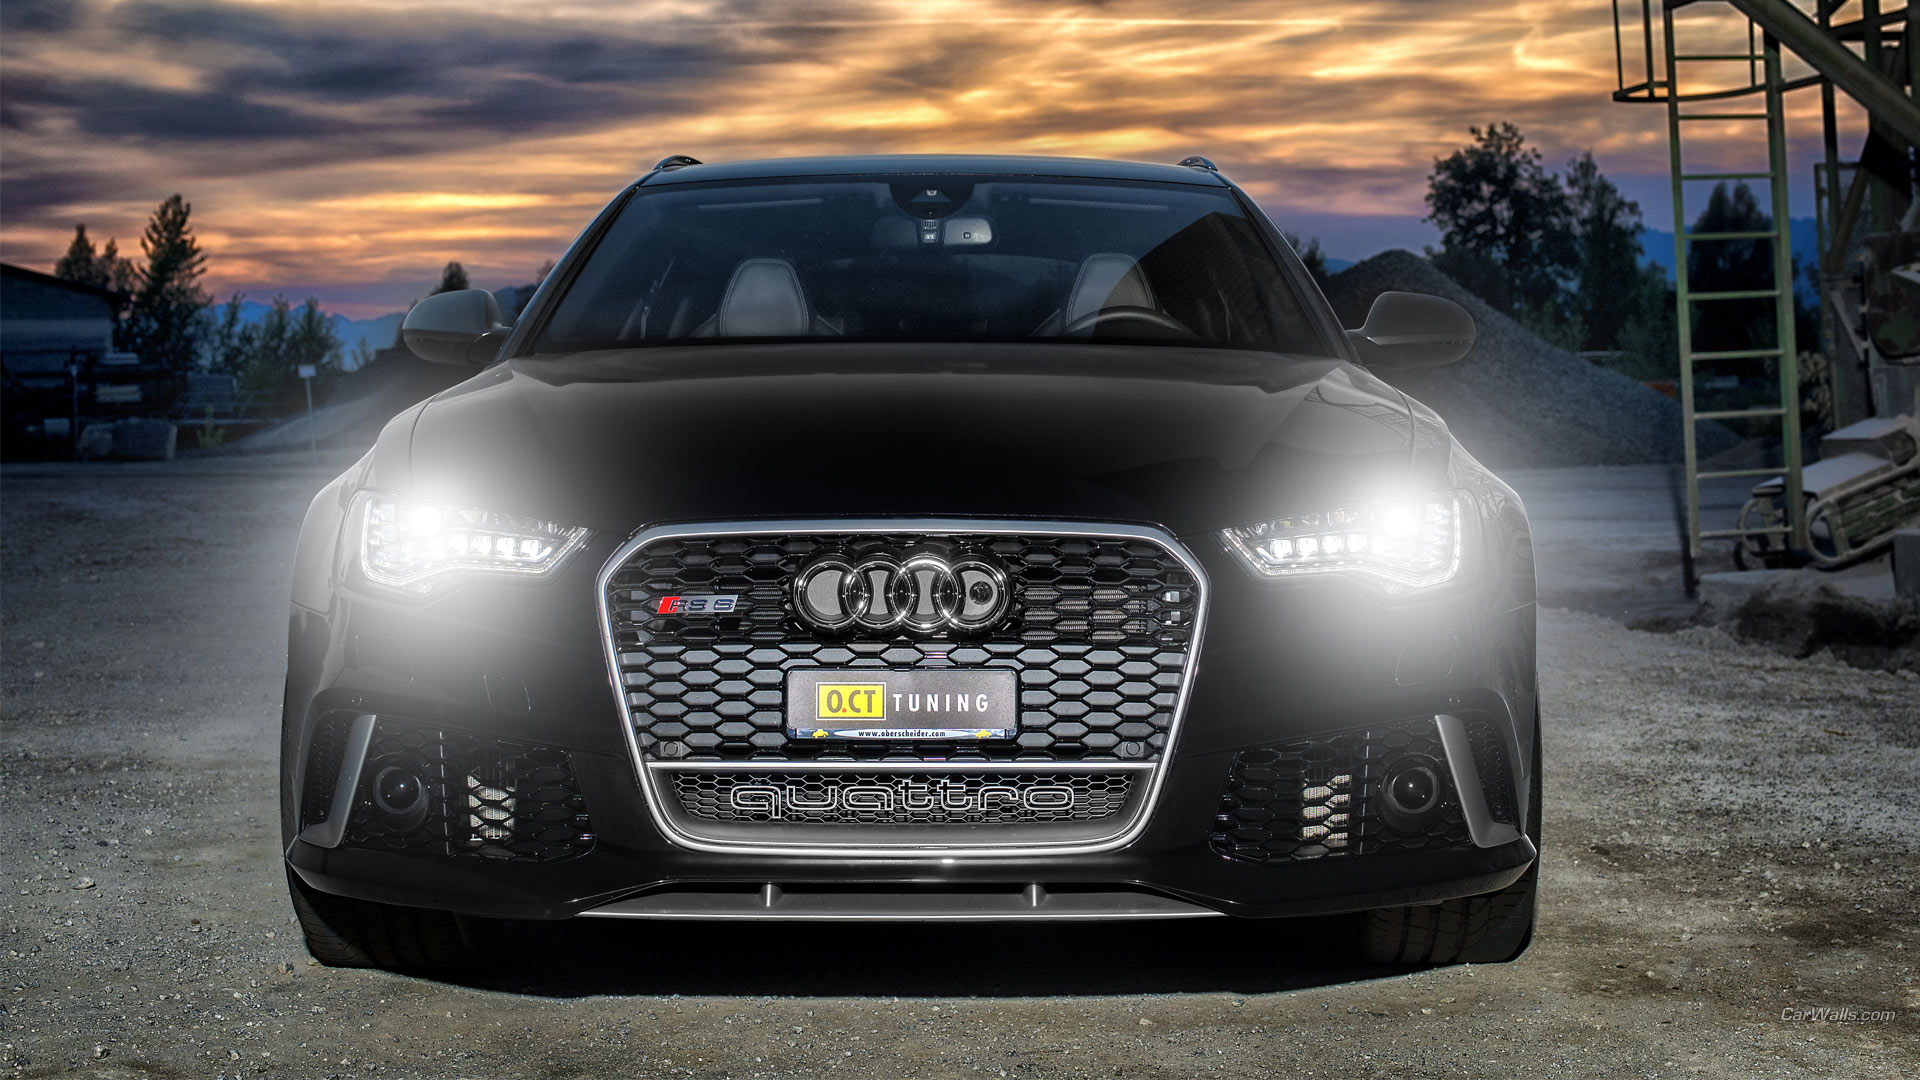 New Cool Hd Audi For Free Download On This Month Wallpaper